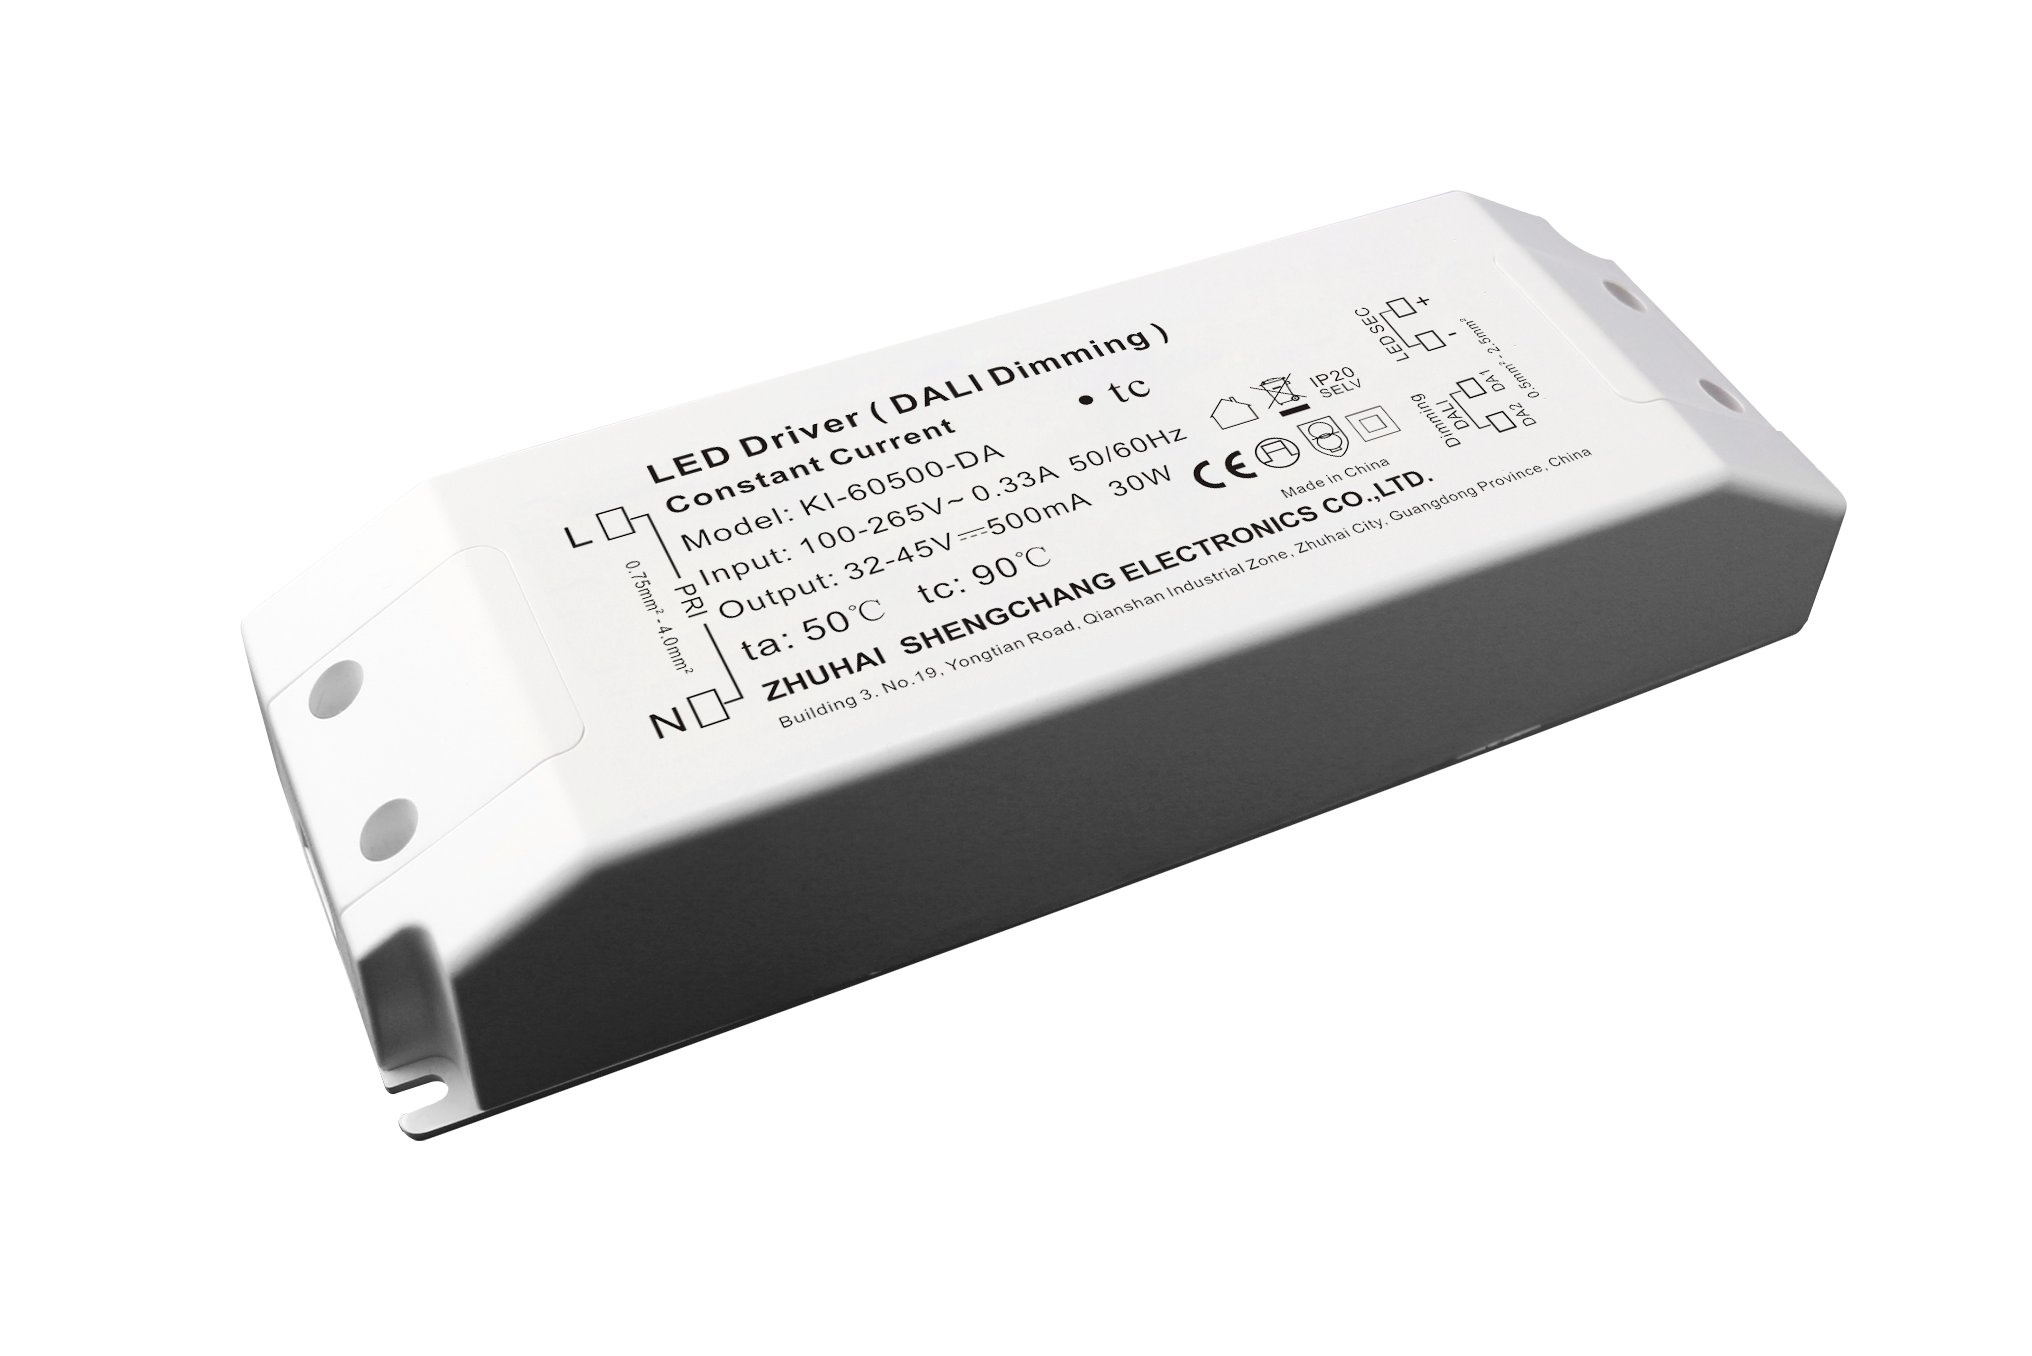 30W DALI constant current dimmable LED driver